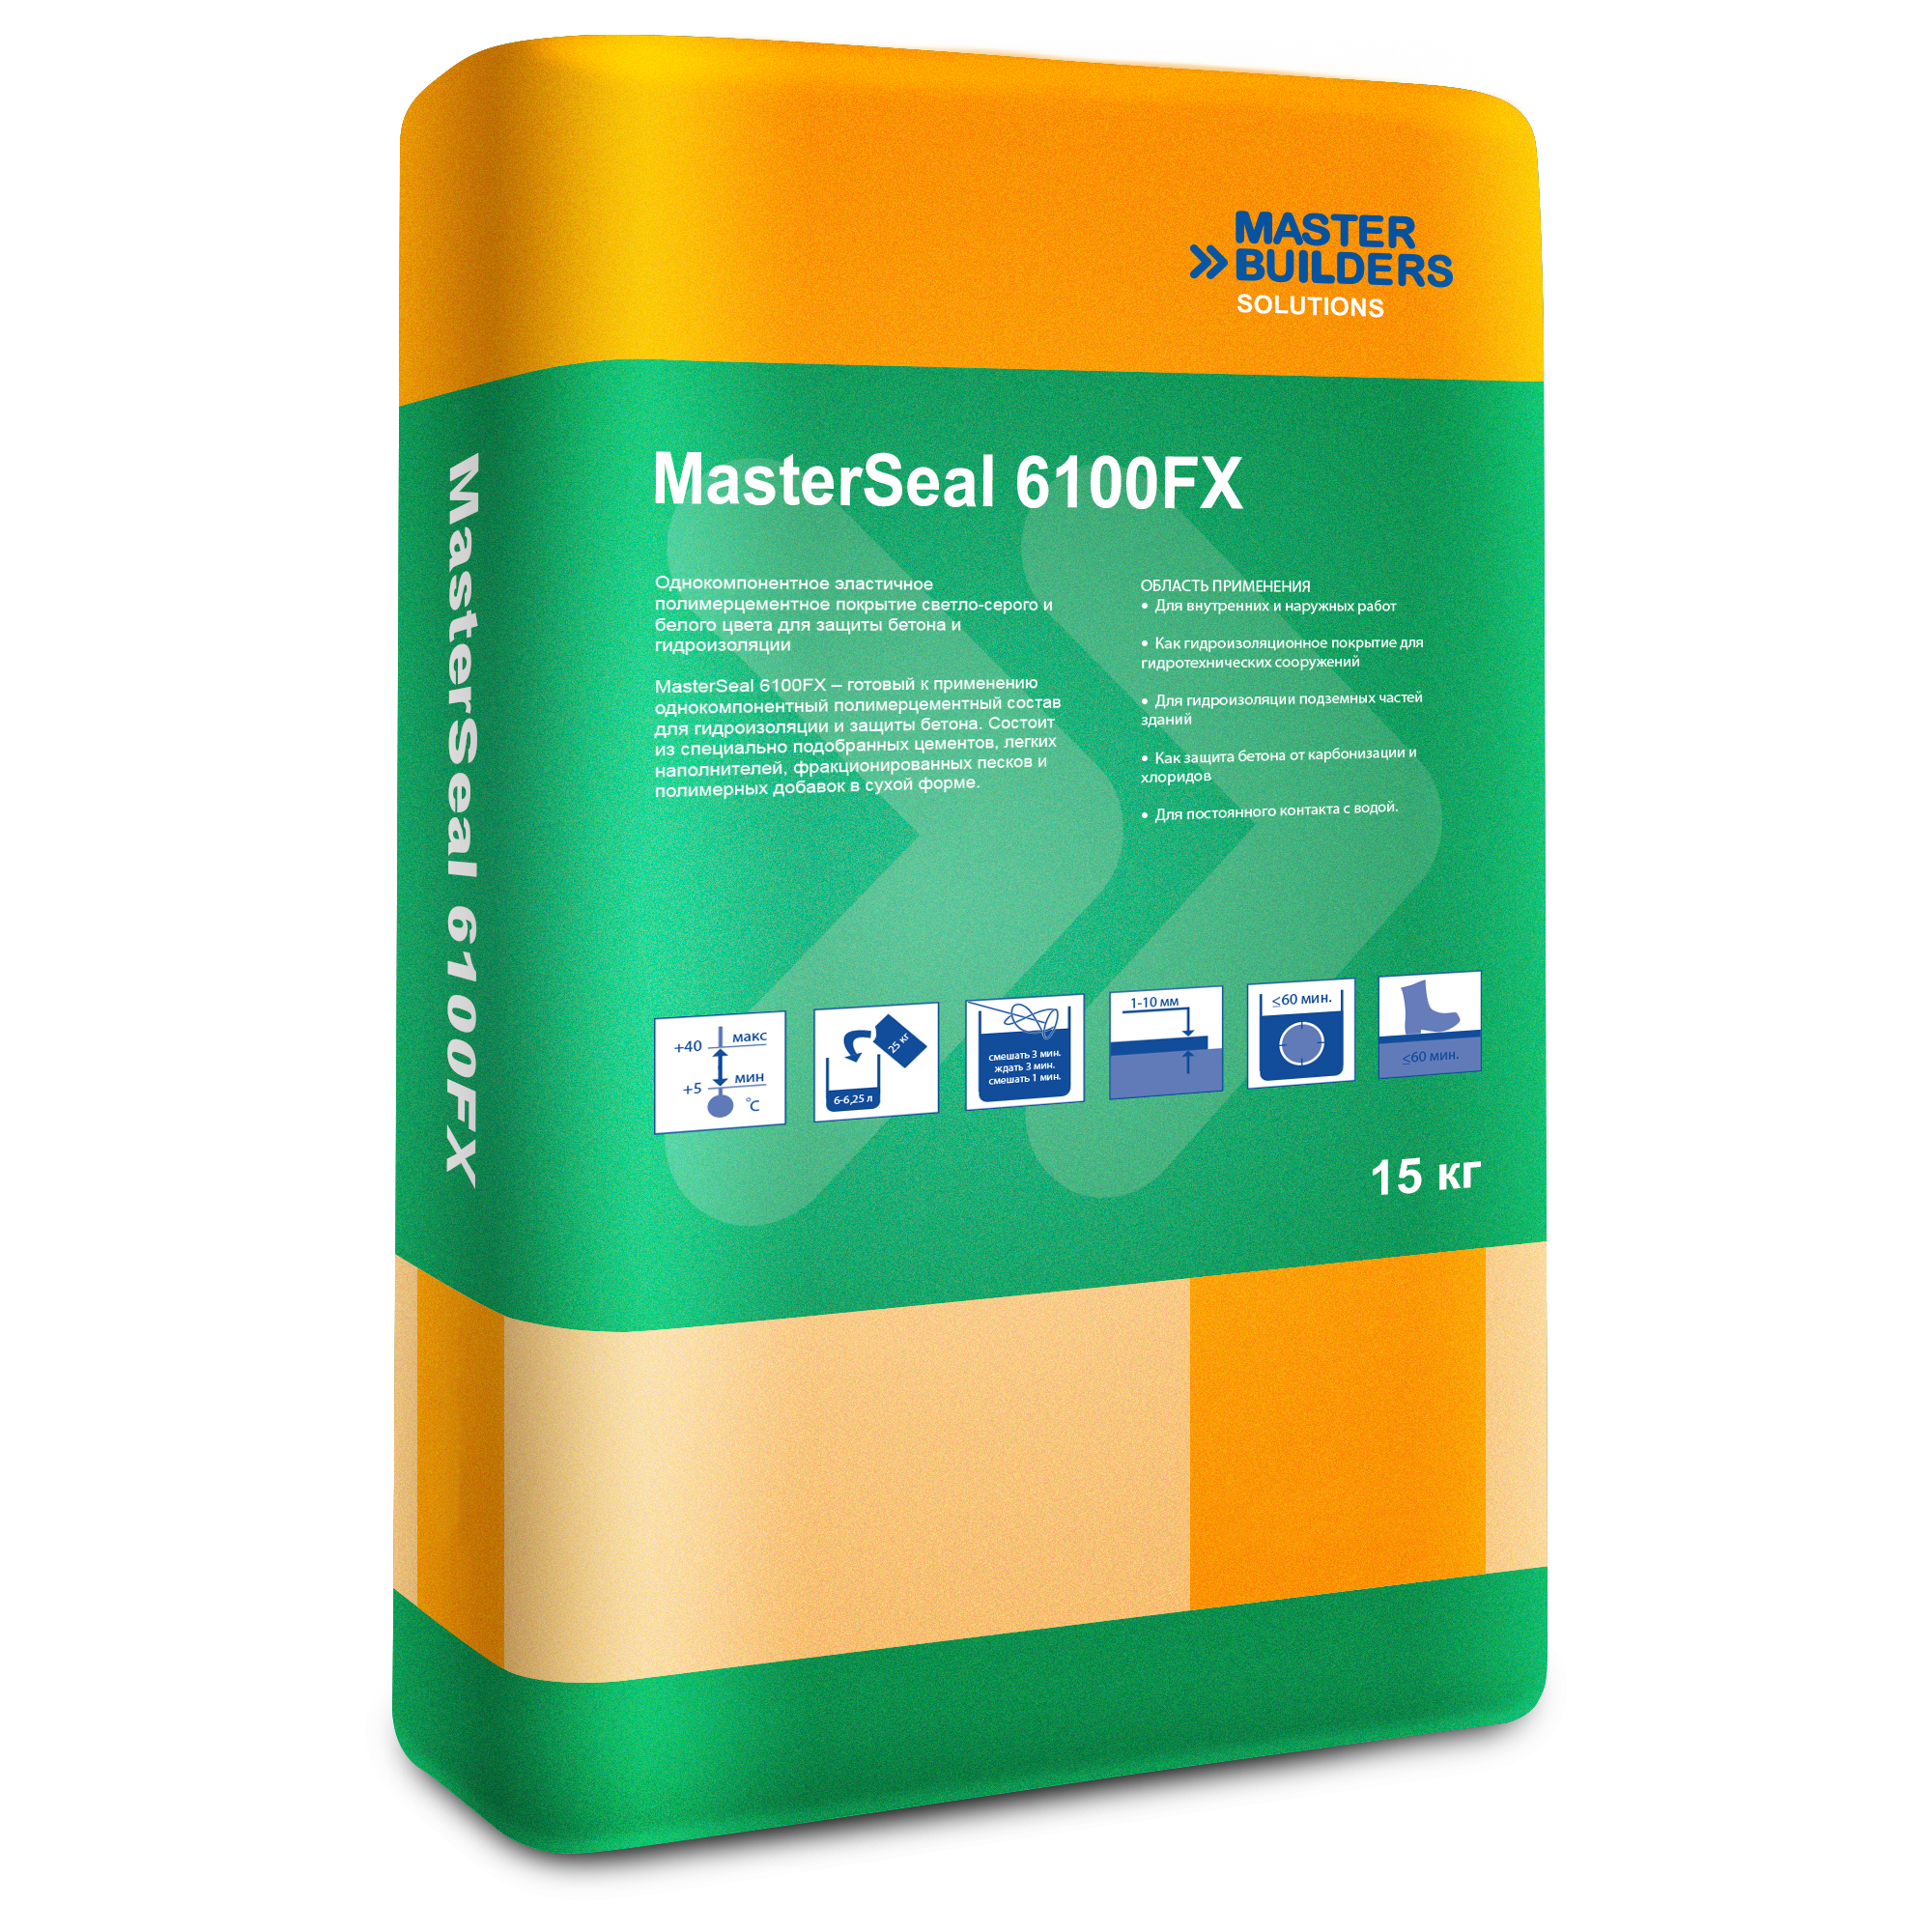 MasterSeal 6100FX